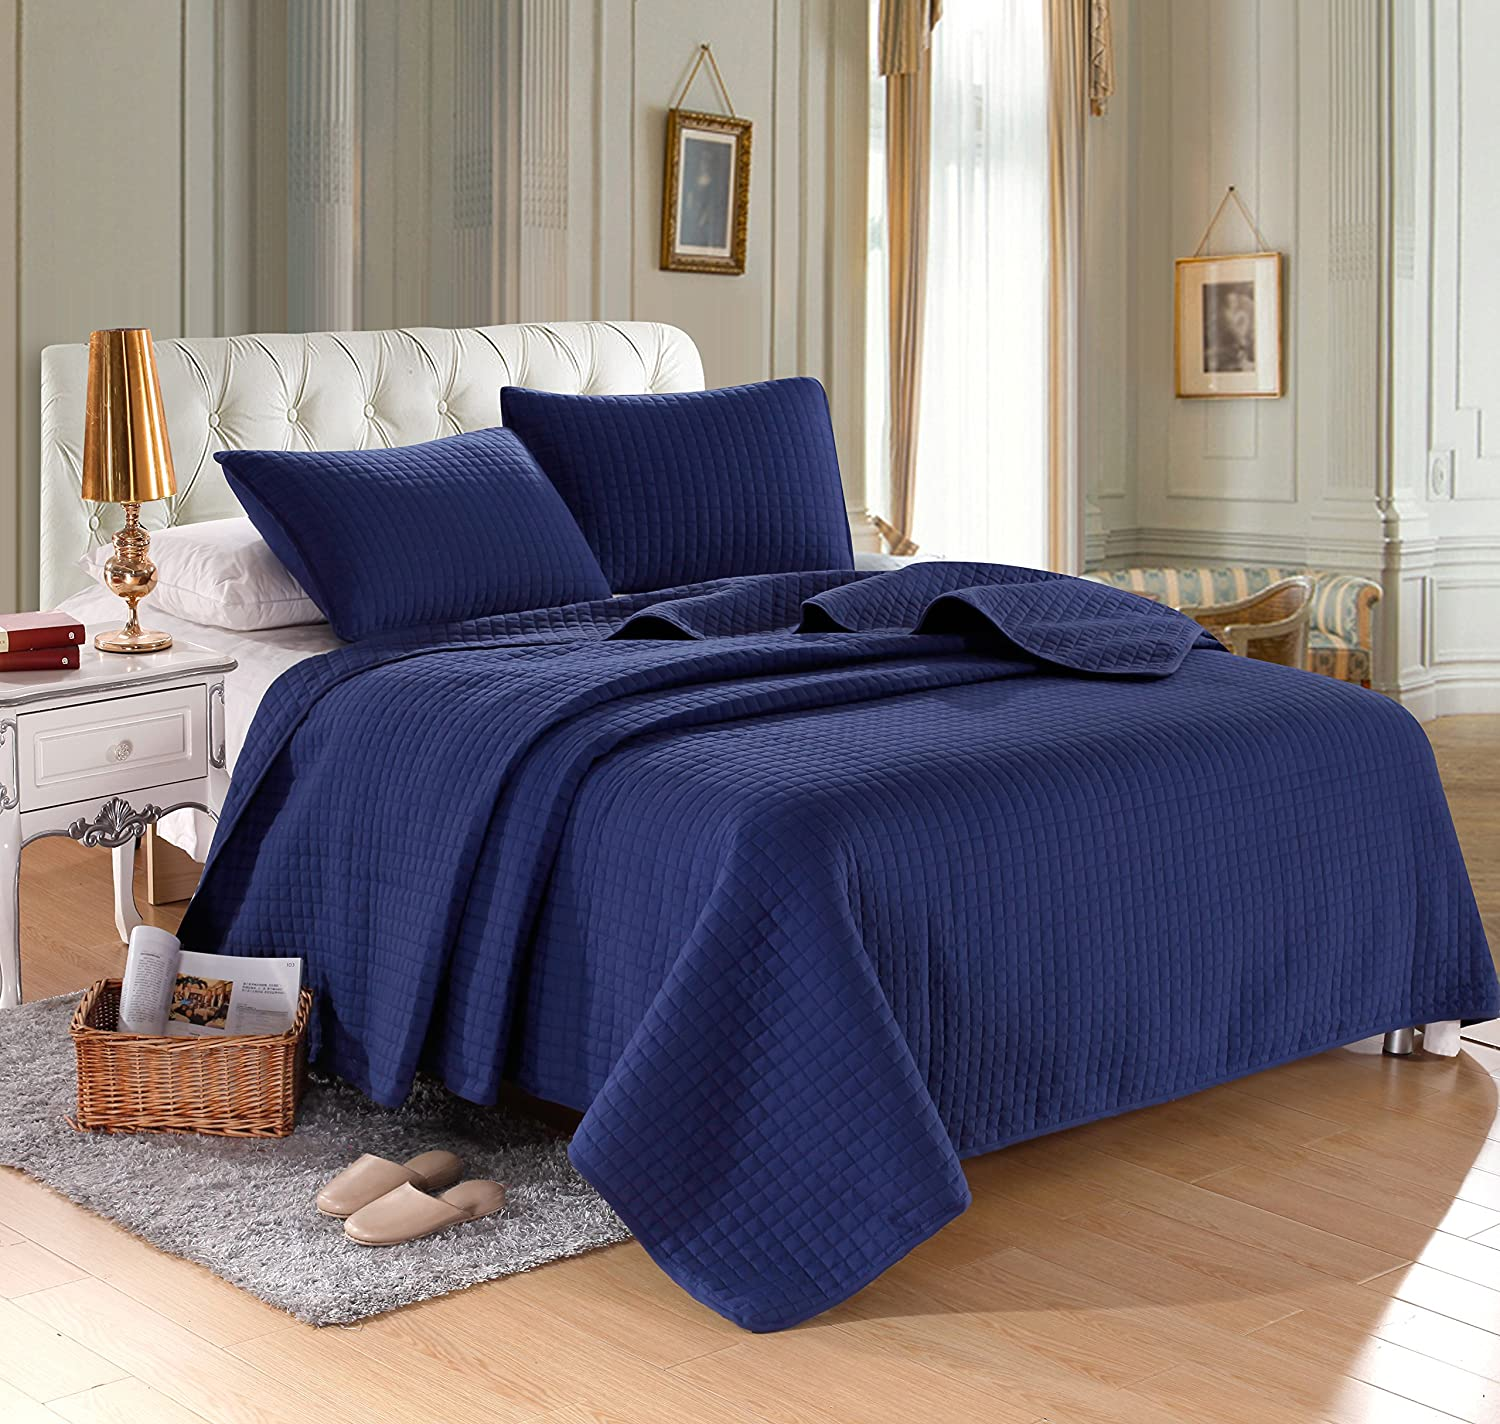 Hypoallergenic, Finely Stitched, All Season, Coverlet